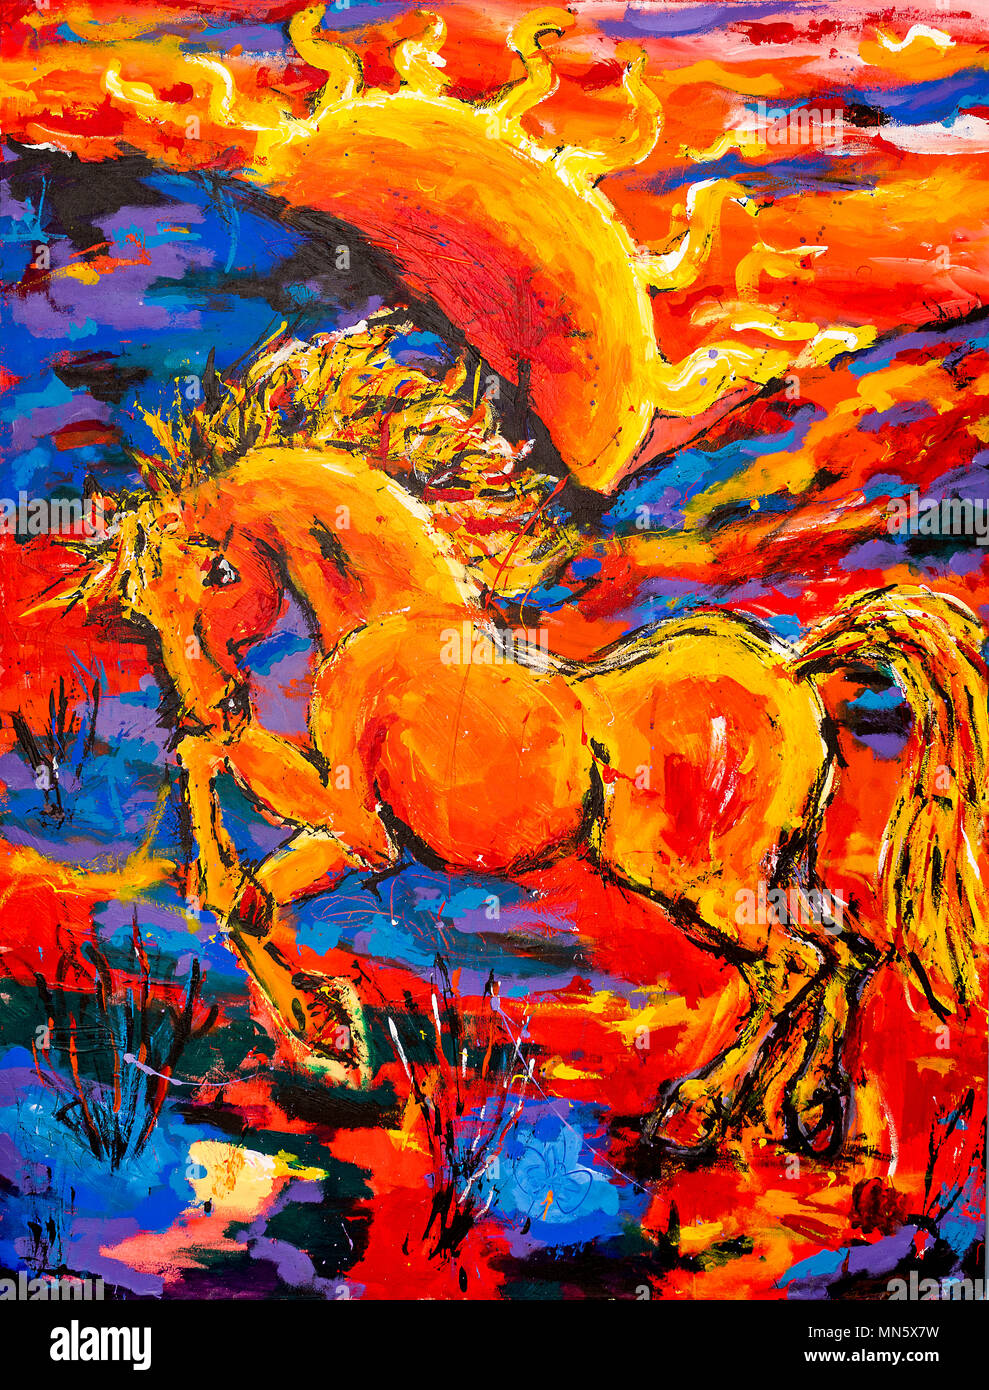 A Vibrant And Colourful Oil And Acrylic Abstract Painting Of Horse Rearing Up At Sunset On Canvas Painted With Wild And Free Brush Strokes Stock Photo Alamy